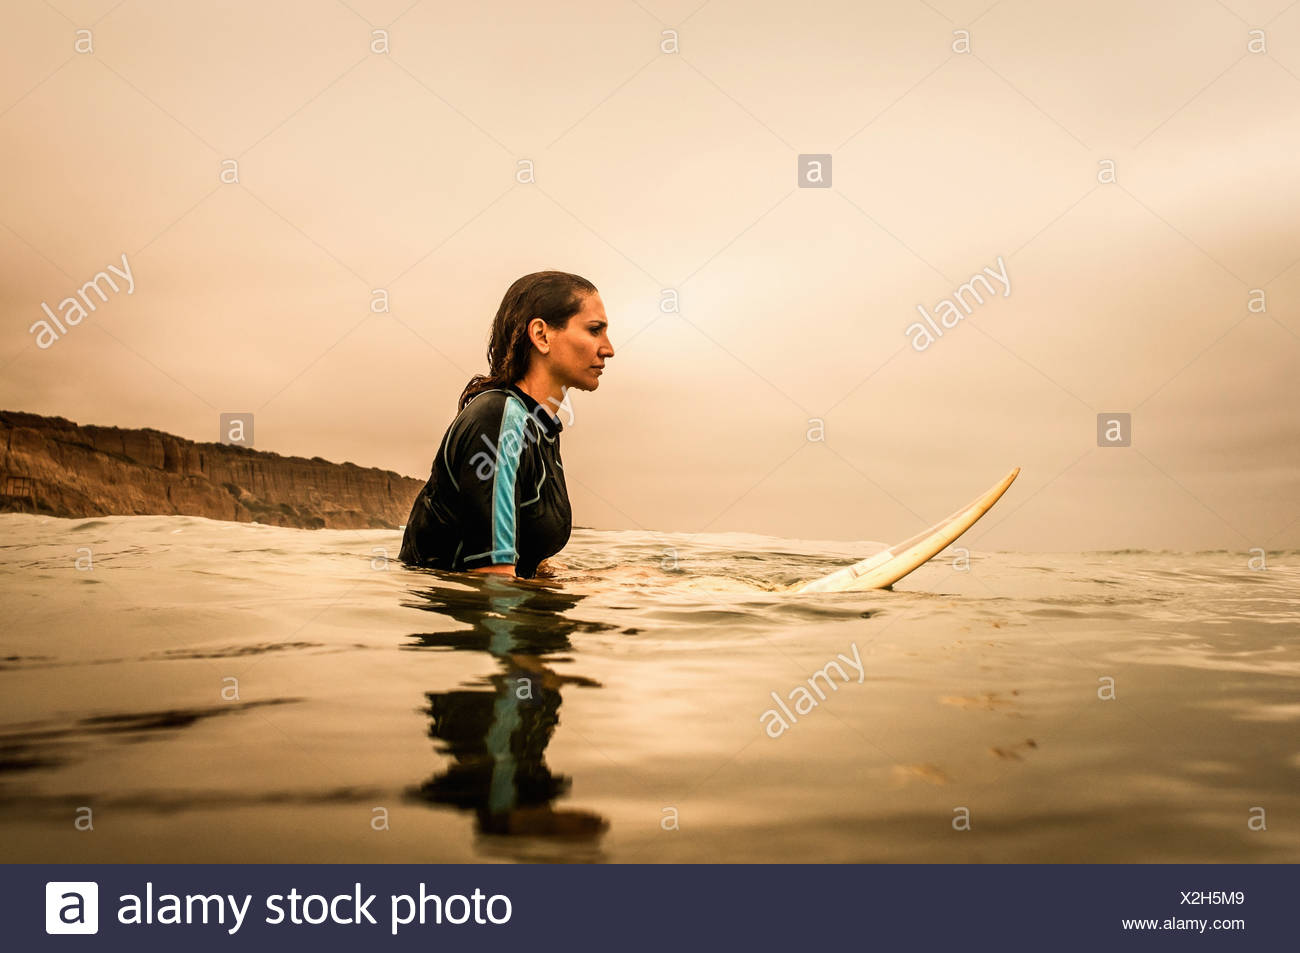 Young woman in sea with surfboard, profile - Stock Image